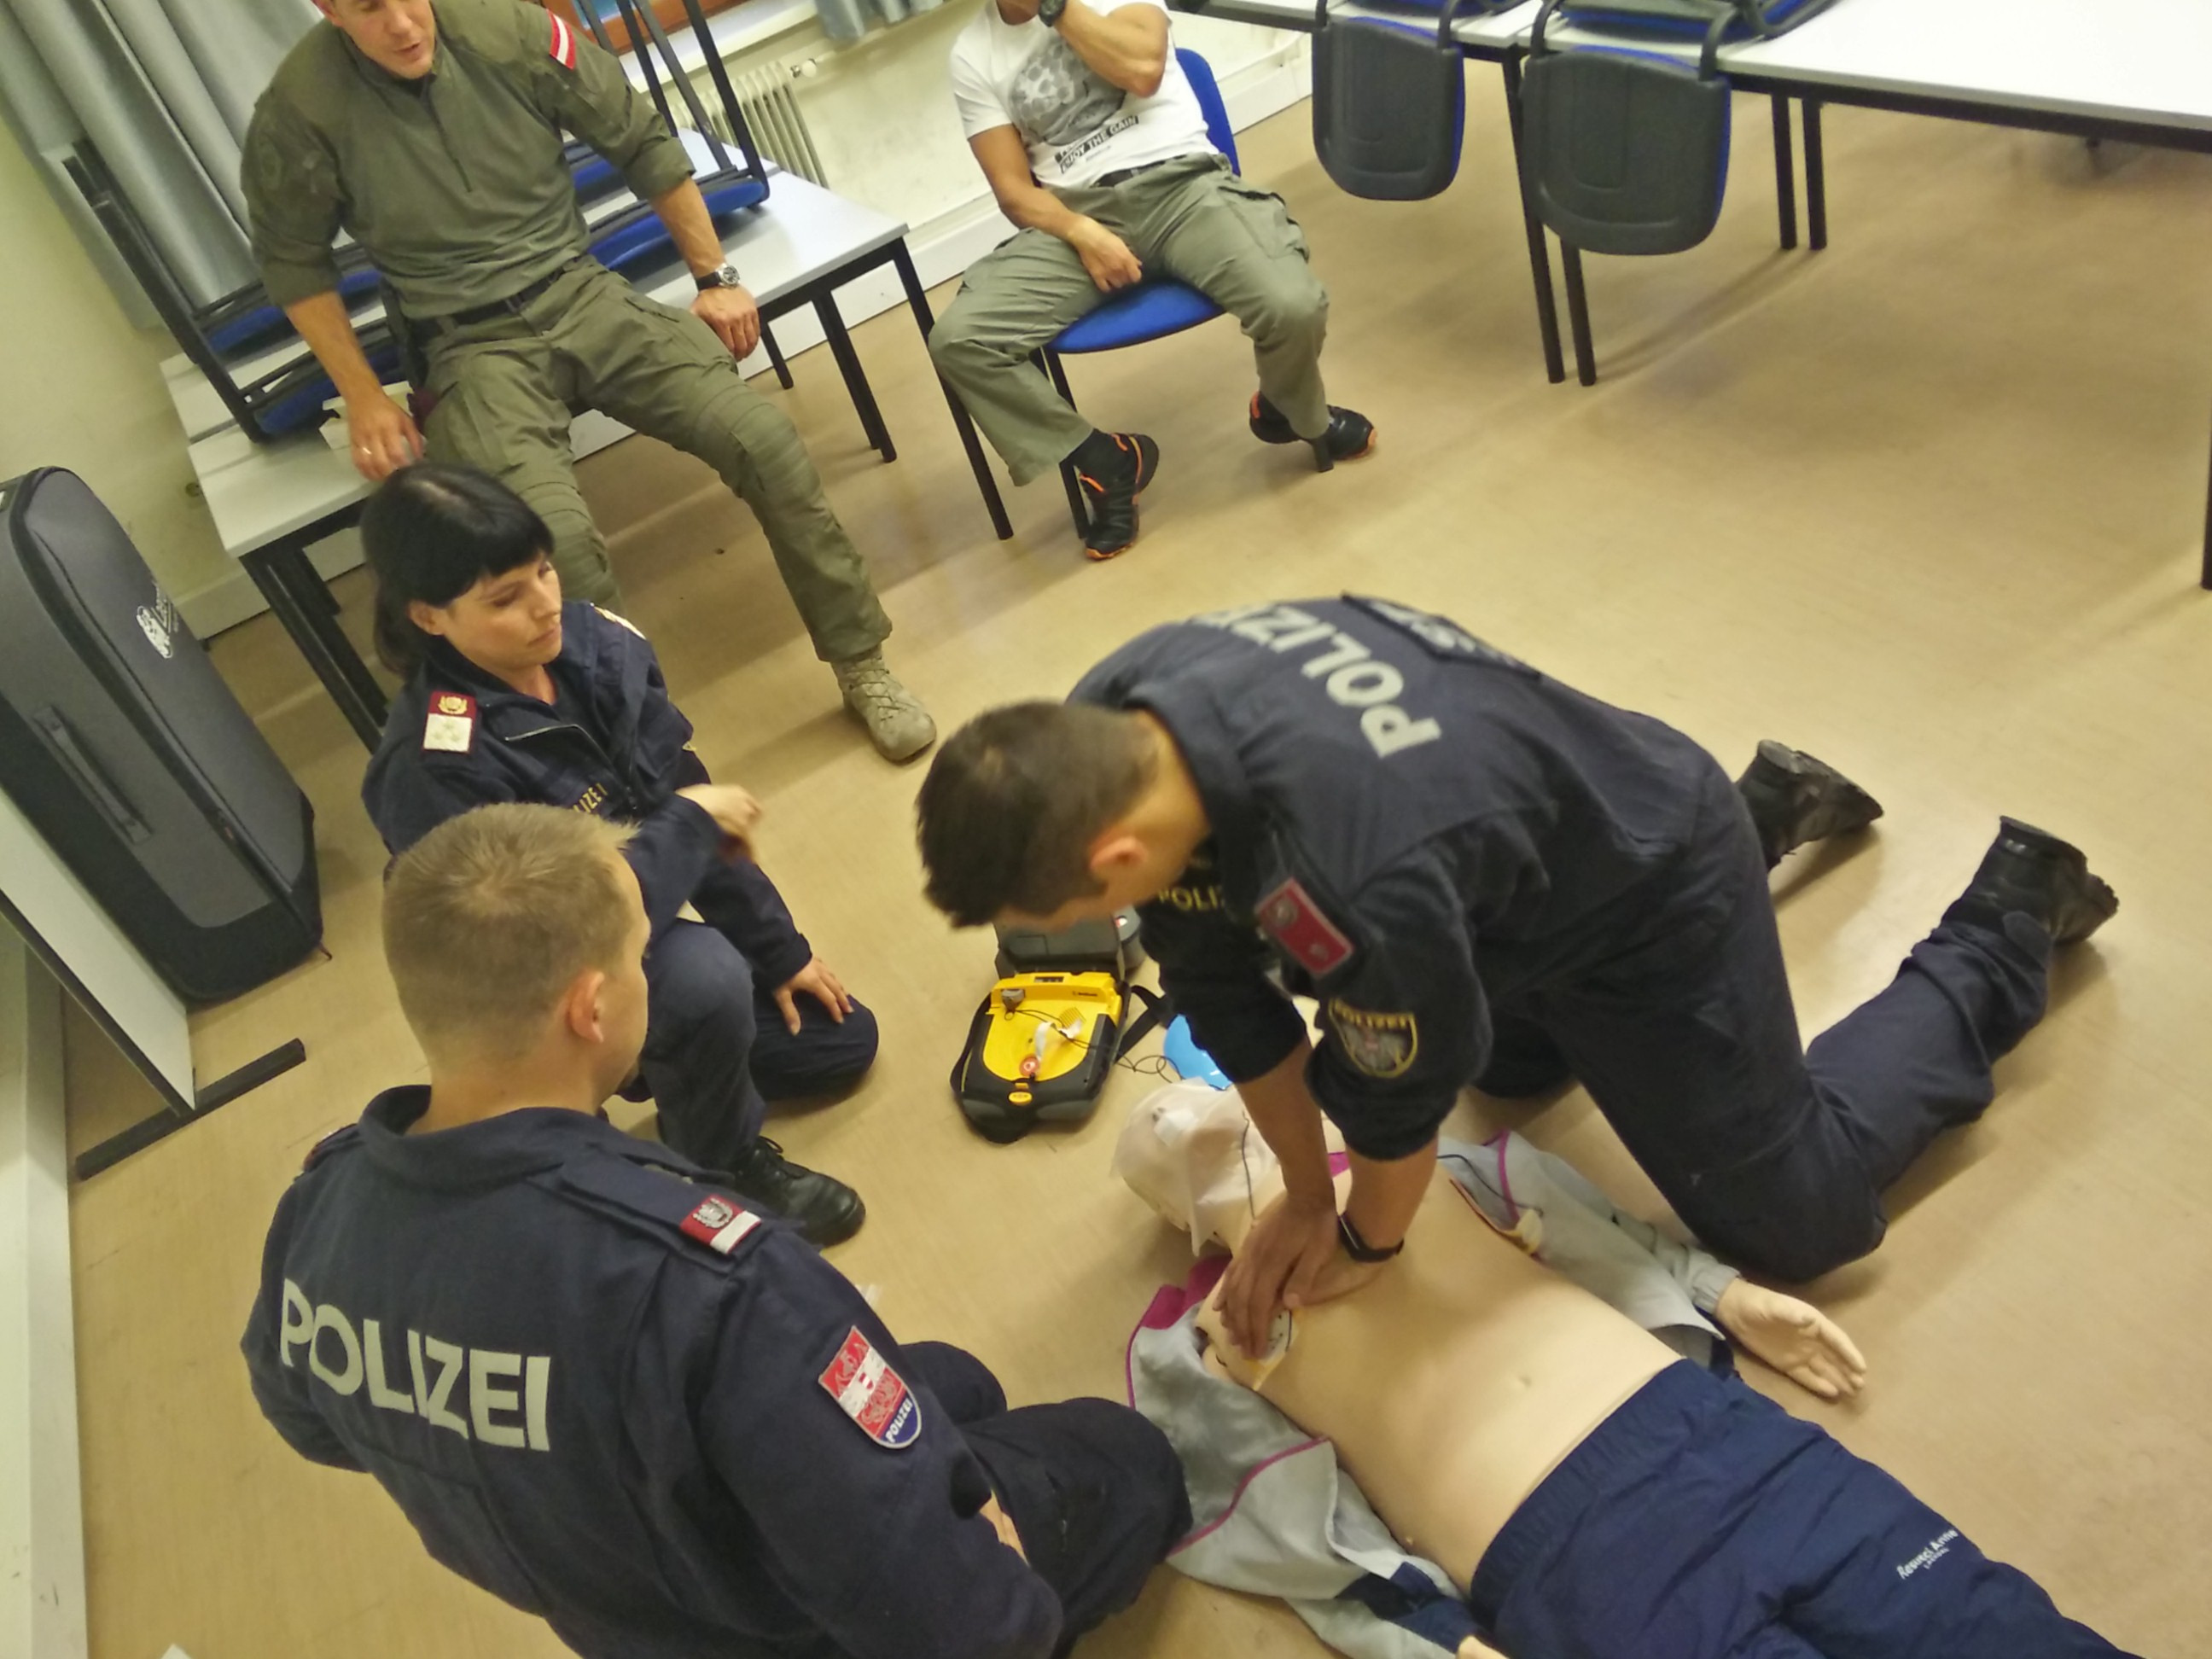 First Aid in Theorie